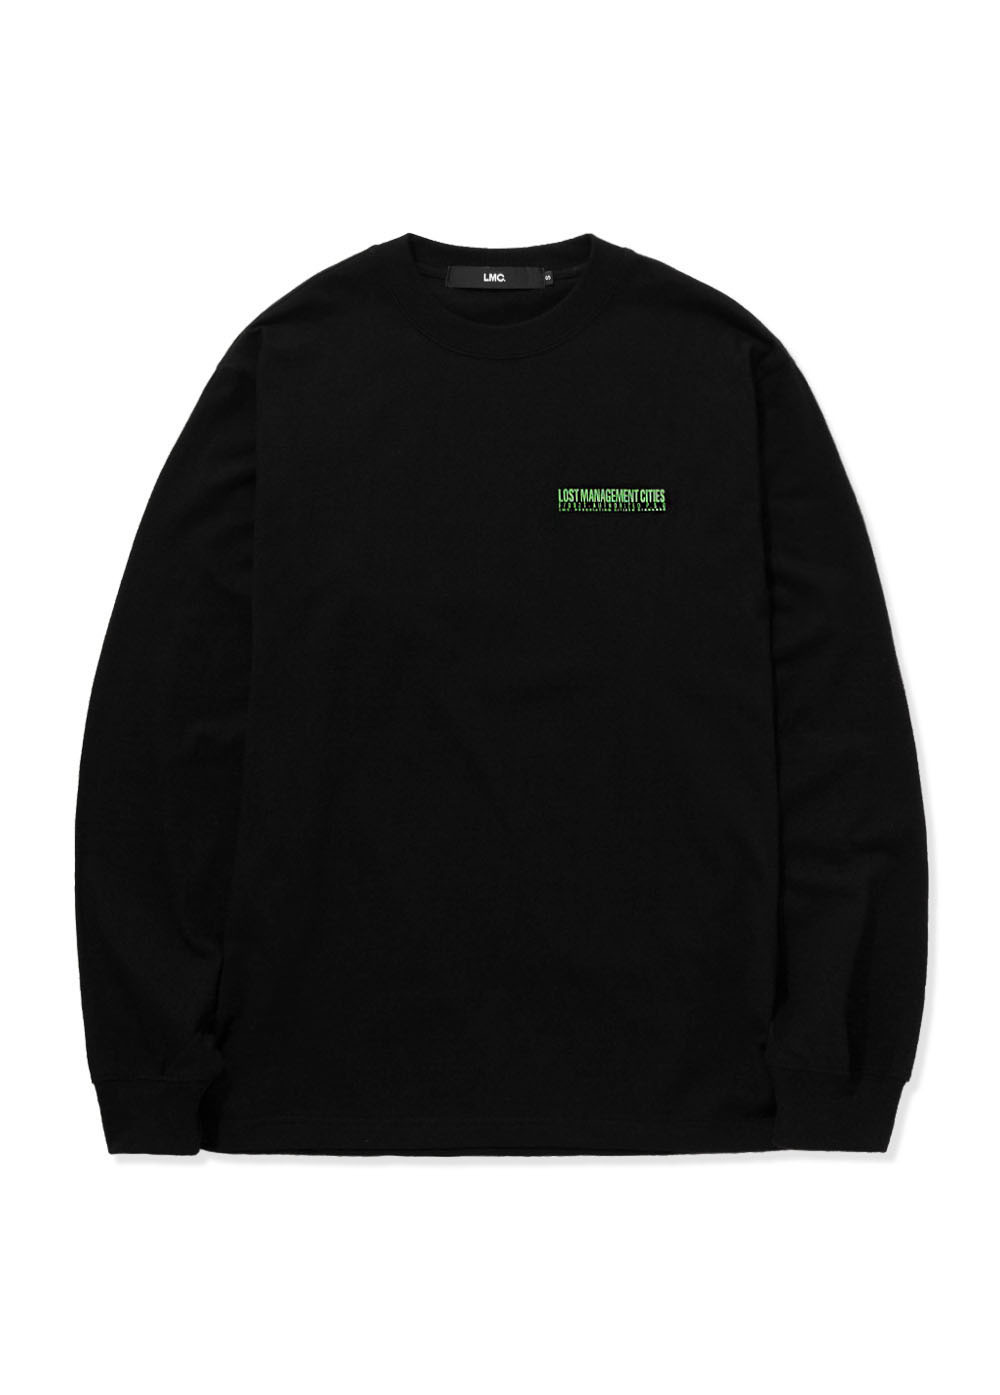 LMC AUTHORIZED LOGO LONG SLV TEE black